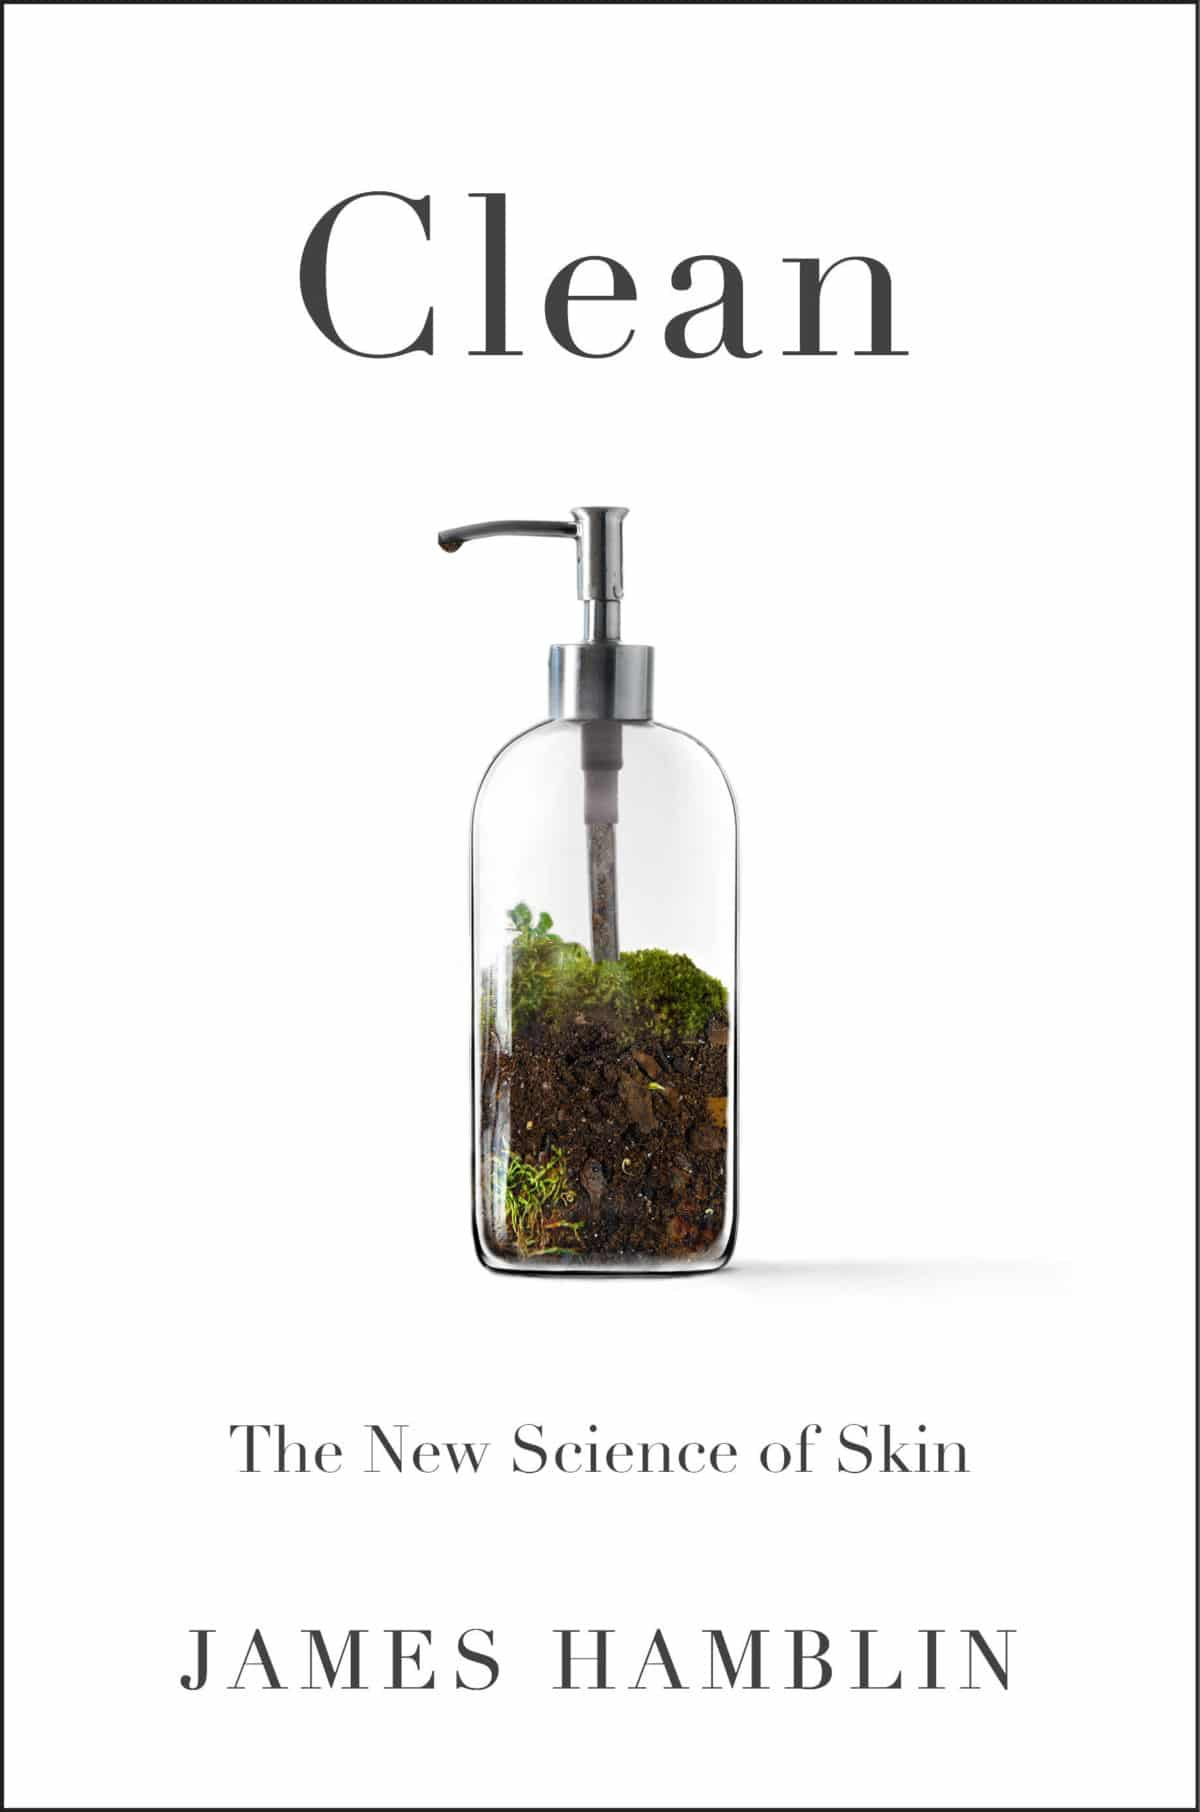 Clean-the-new-science-of-skin-cover-1200x1812.jpg